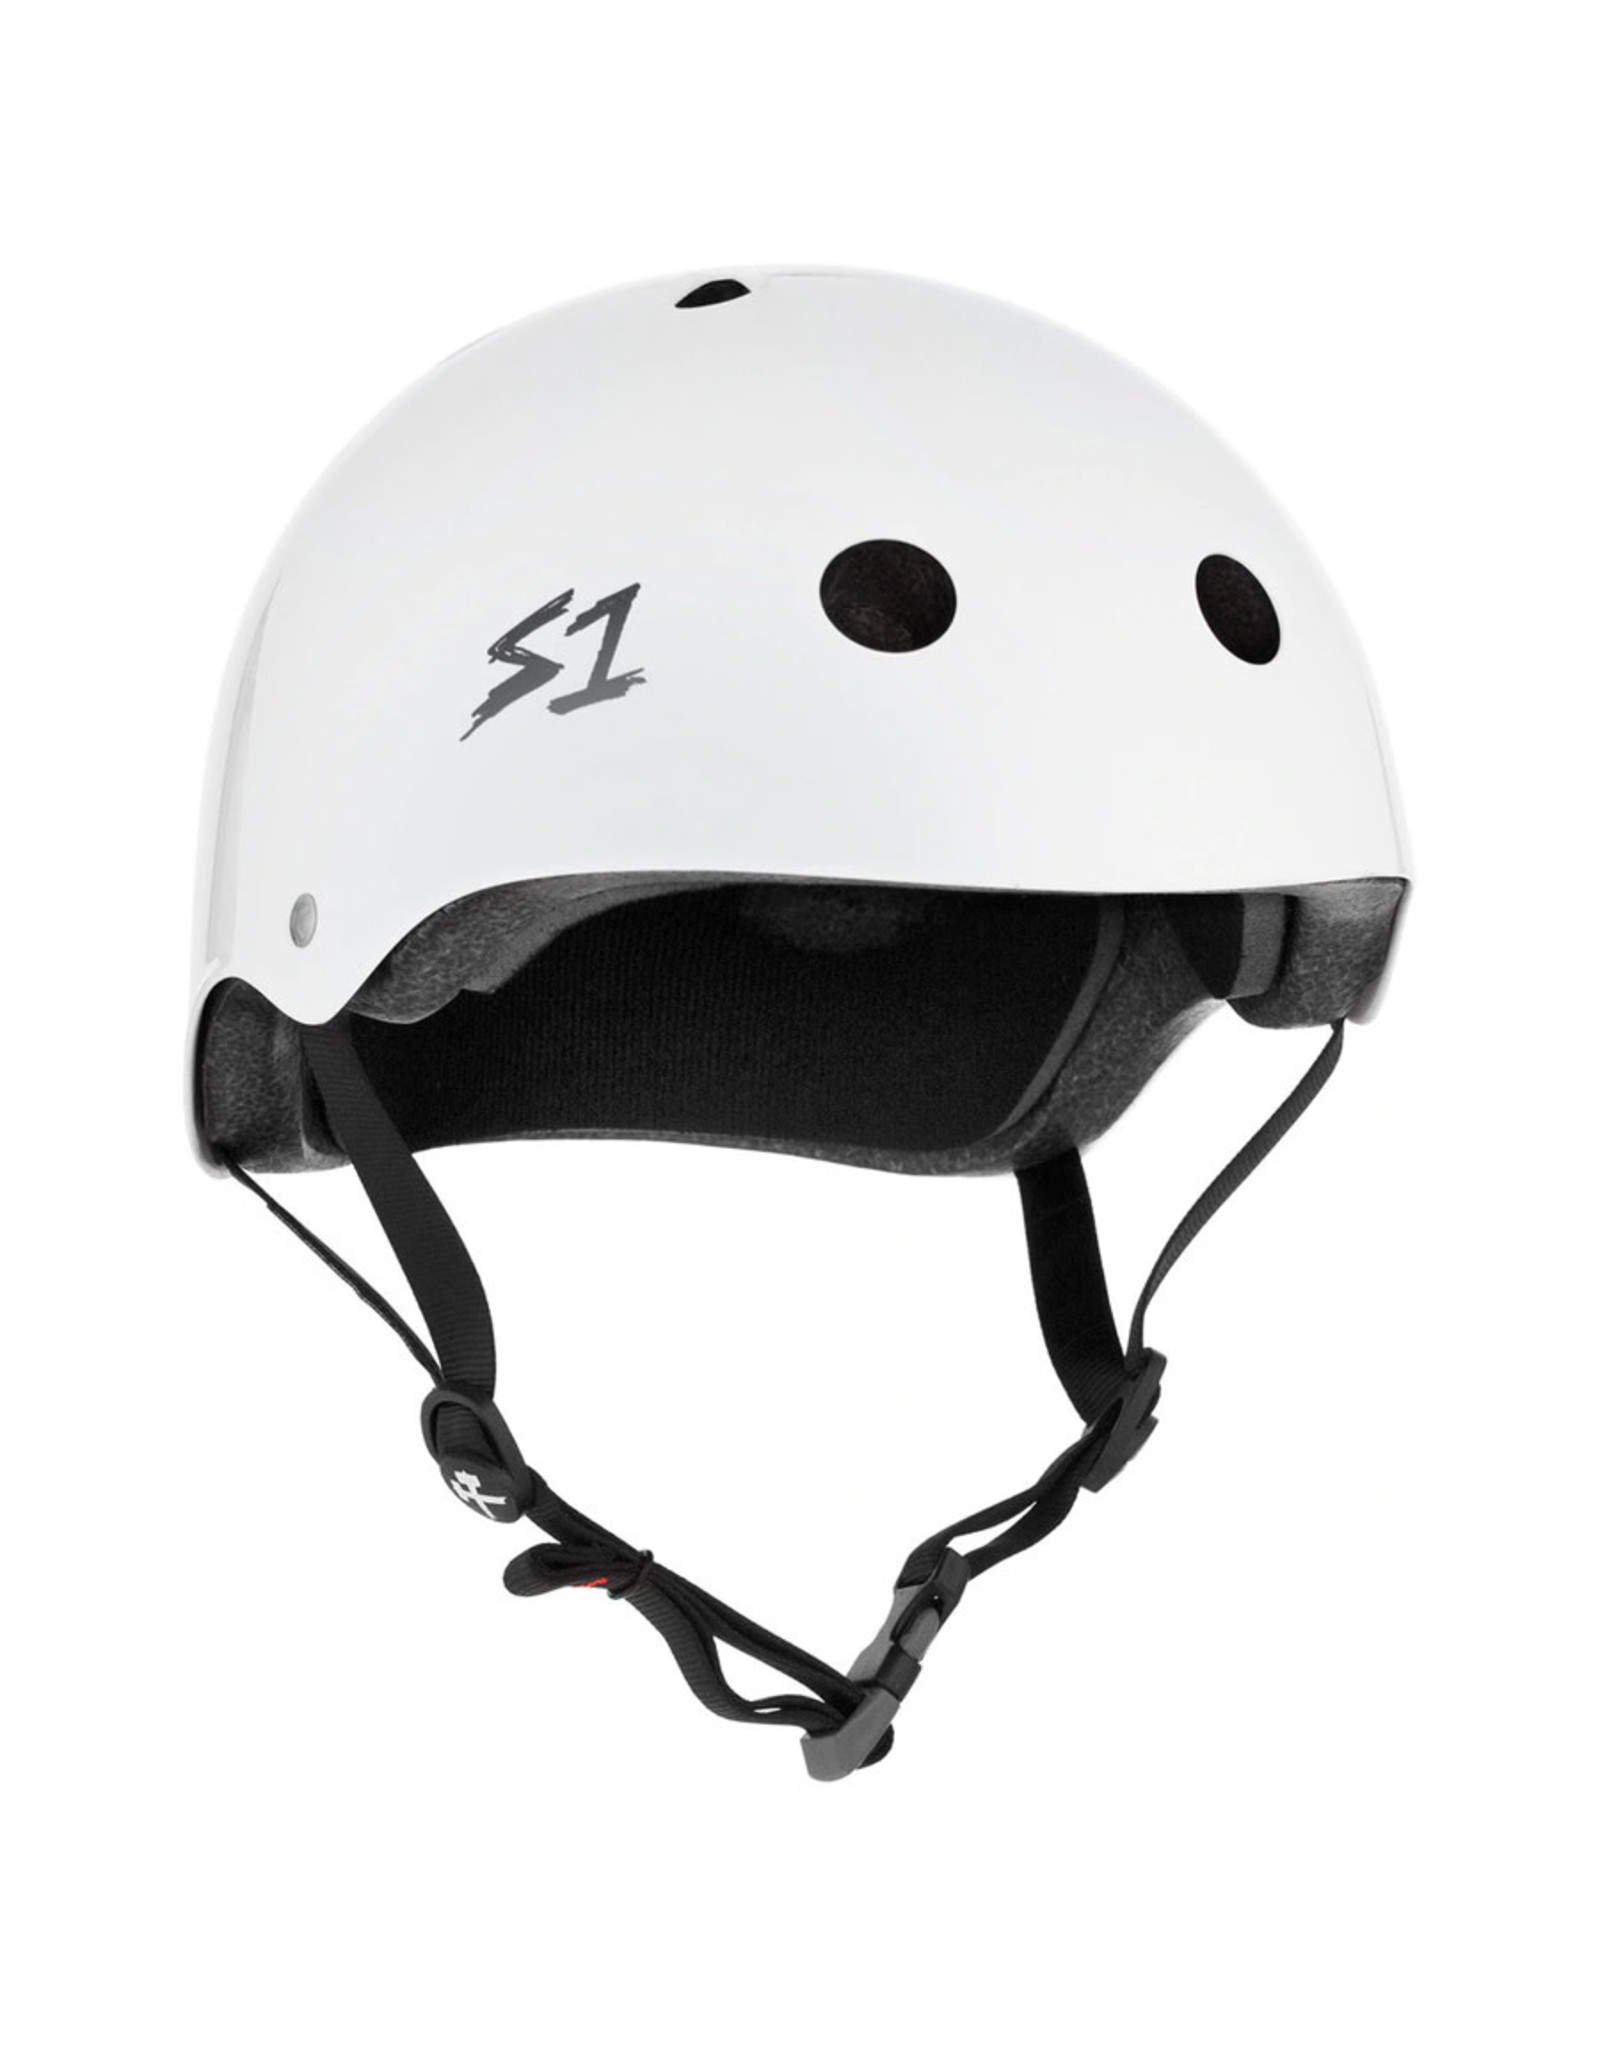 S-One S-One Helmet The Mega (White Gloss/Black Straps)